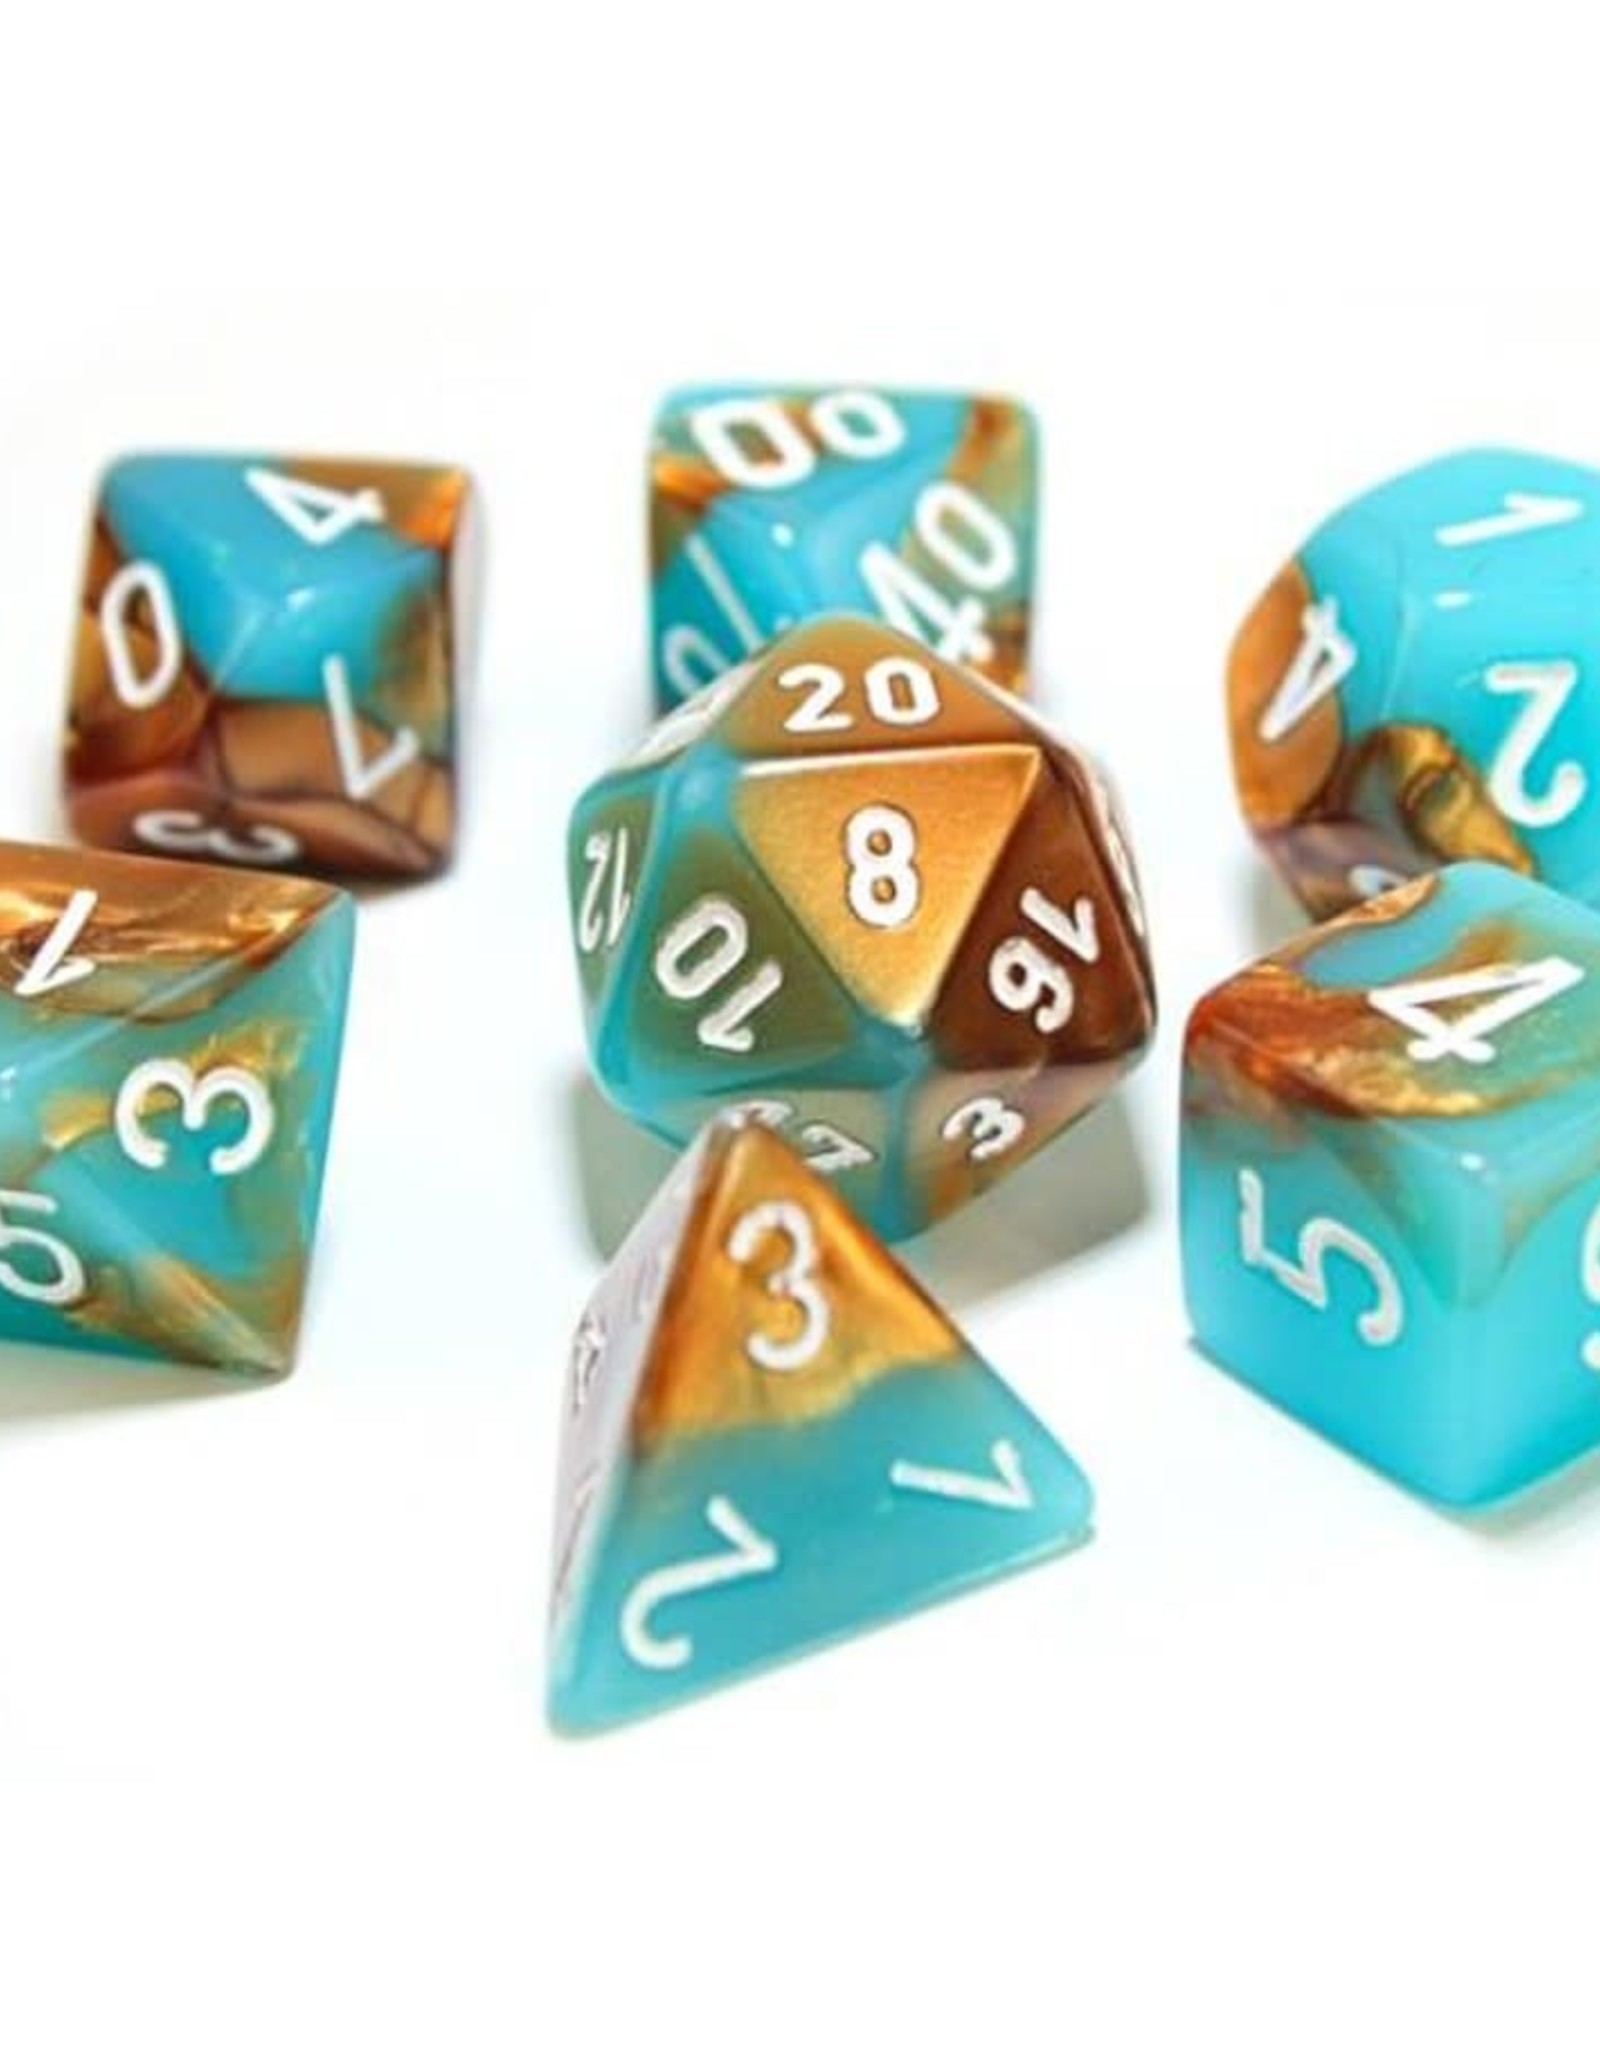 Chessex Polyhedral Lab Dice: Gemini Luminary Copper/Turquoise/White (7)